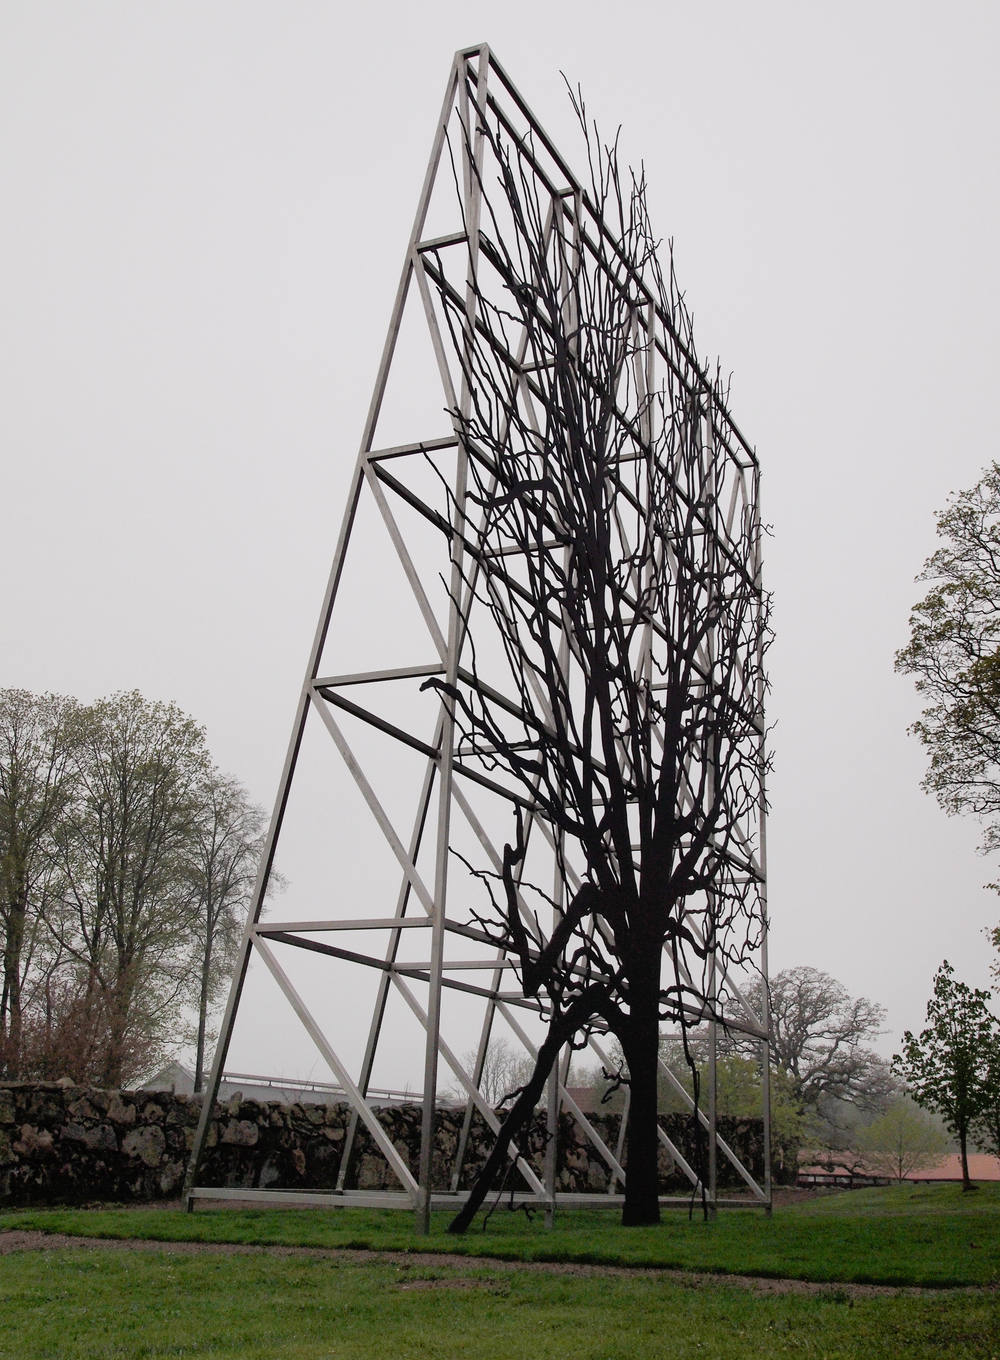 Facade/Billboard, 2010, Edition 1 of 2, stainless steel, 47 x 40 x 8 feet